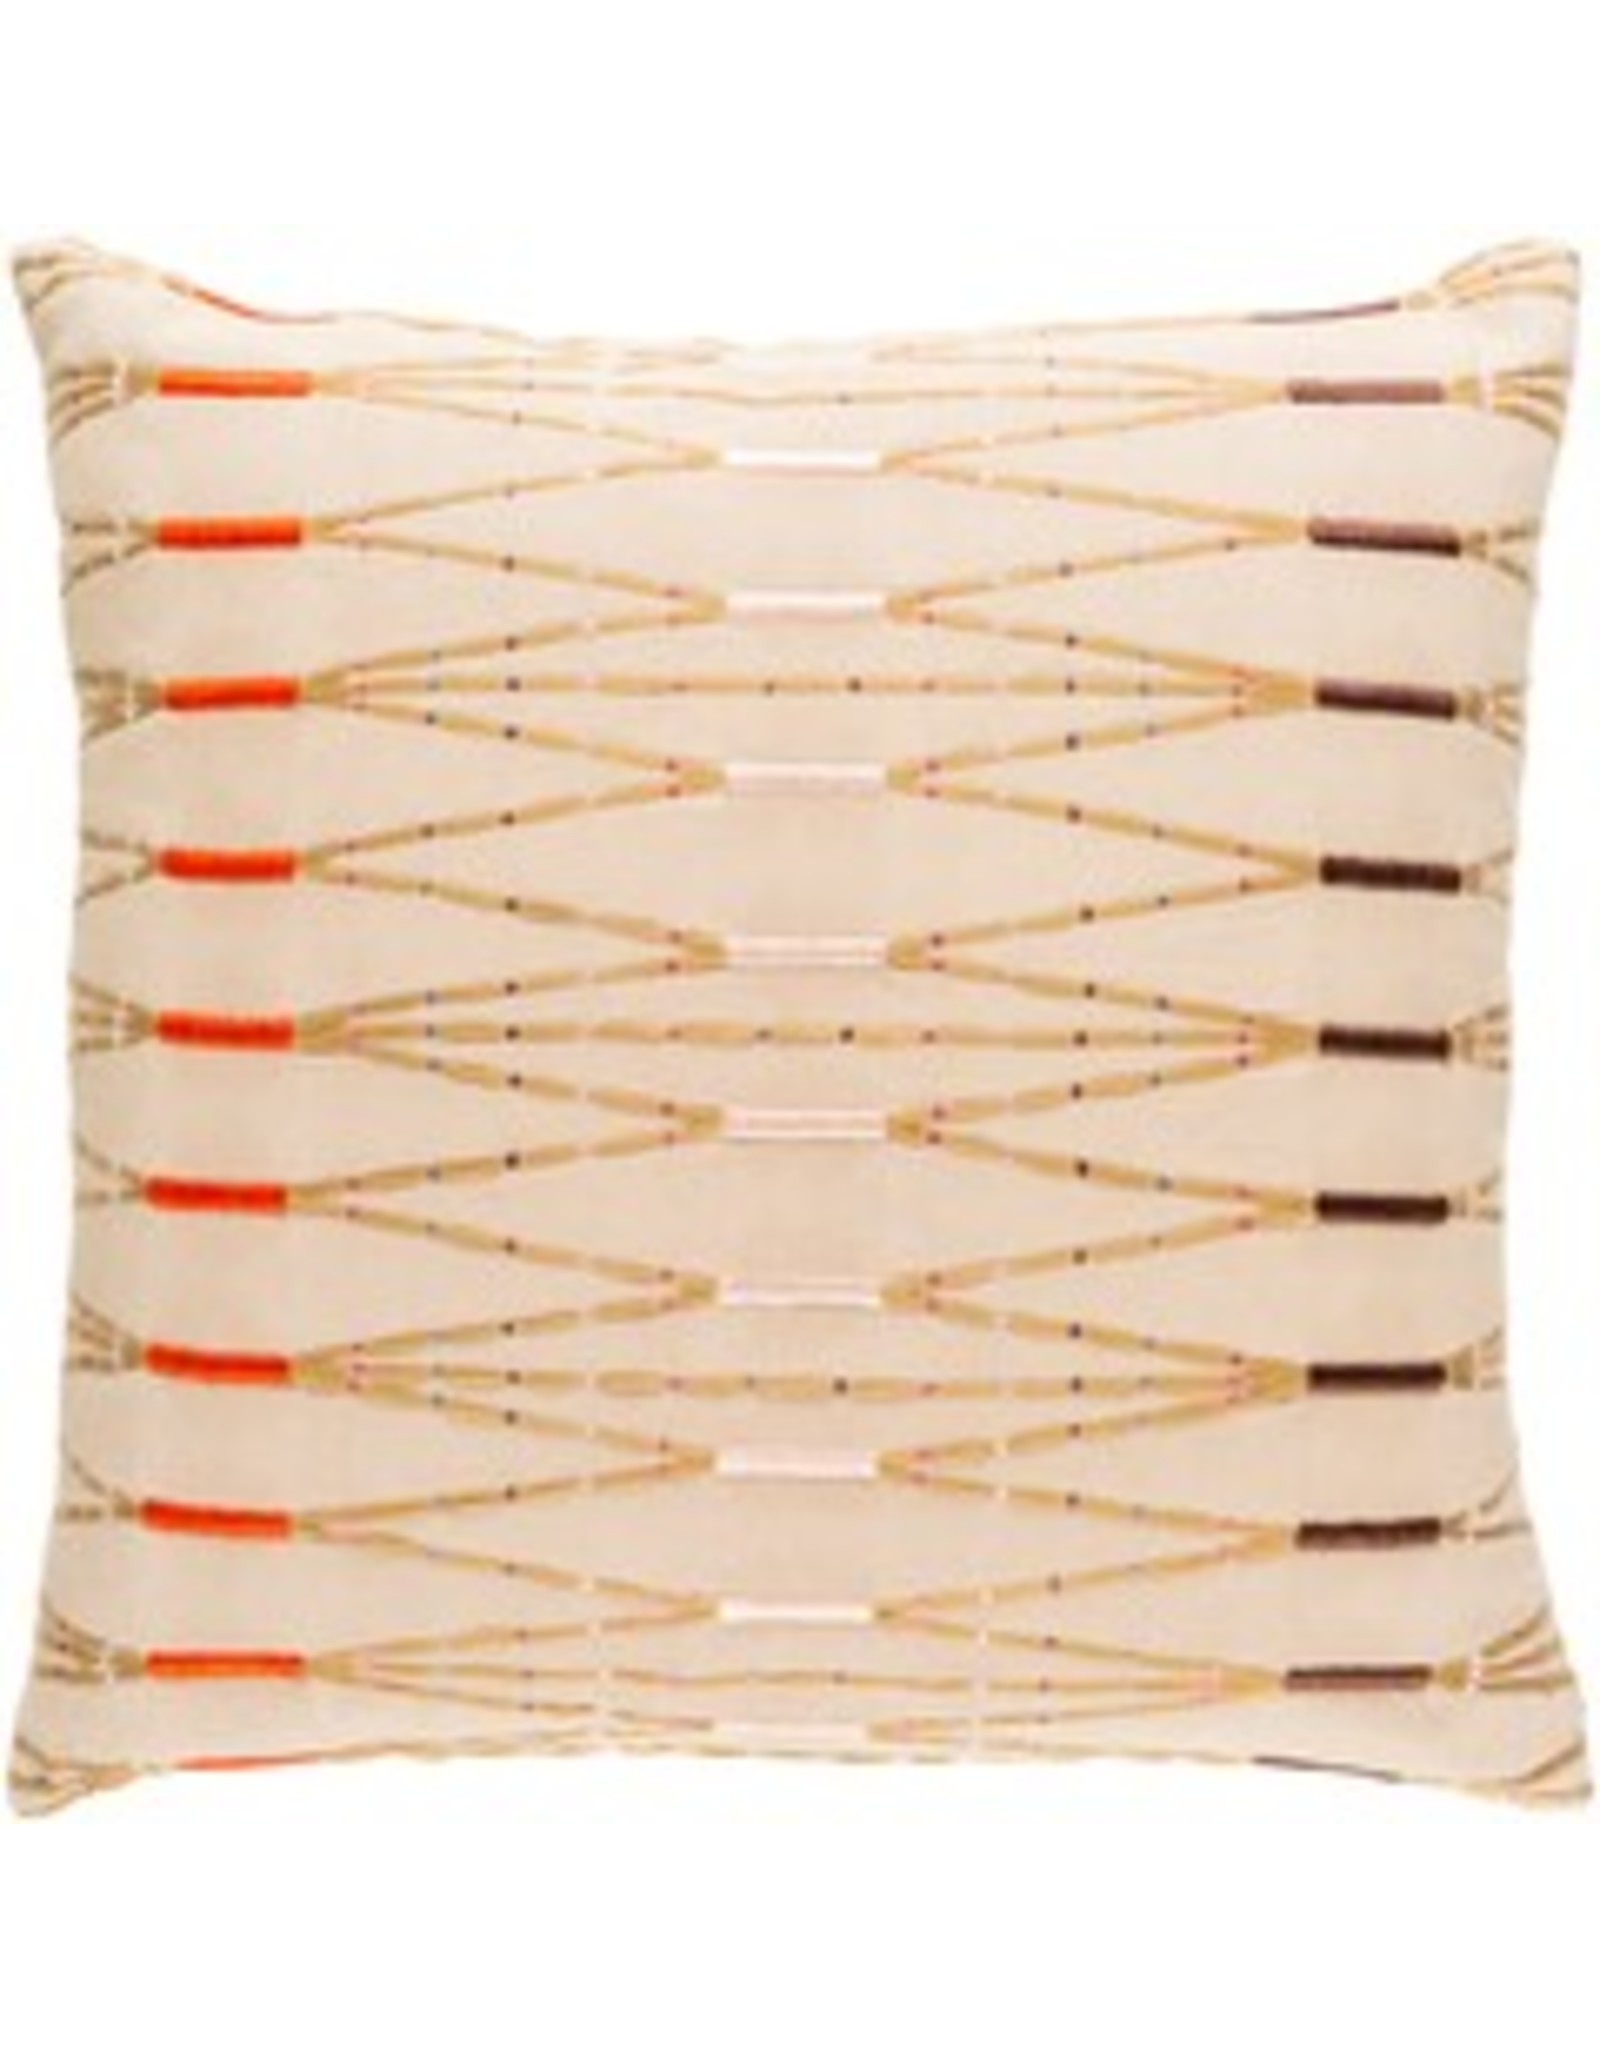 Surya Kikuyu Pillow 18X18